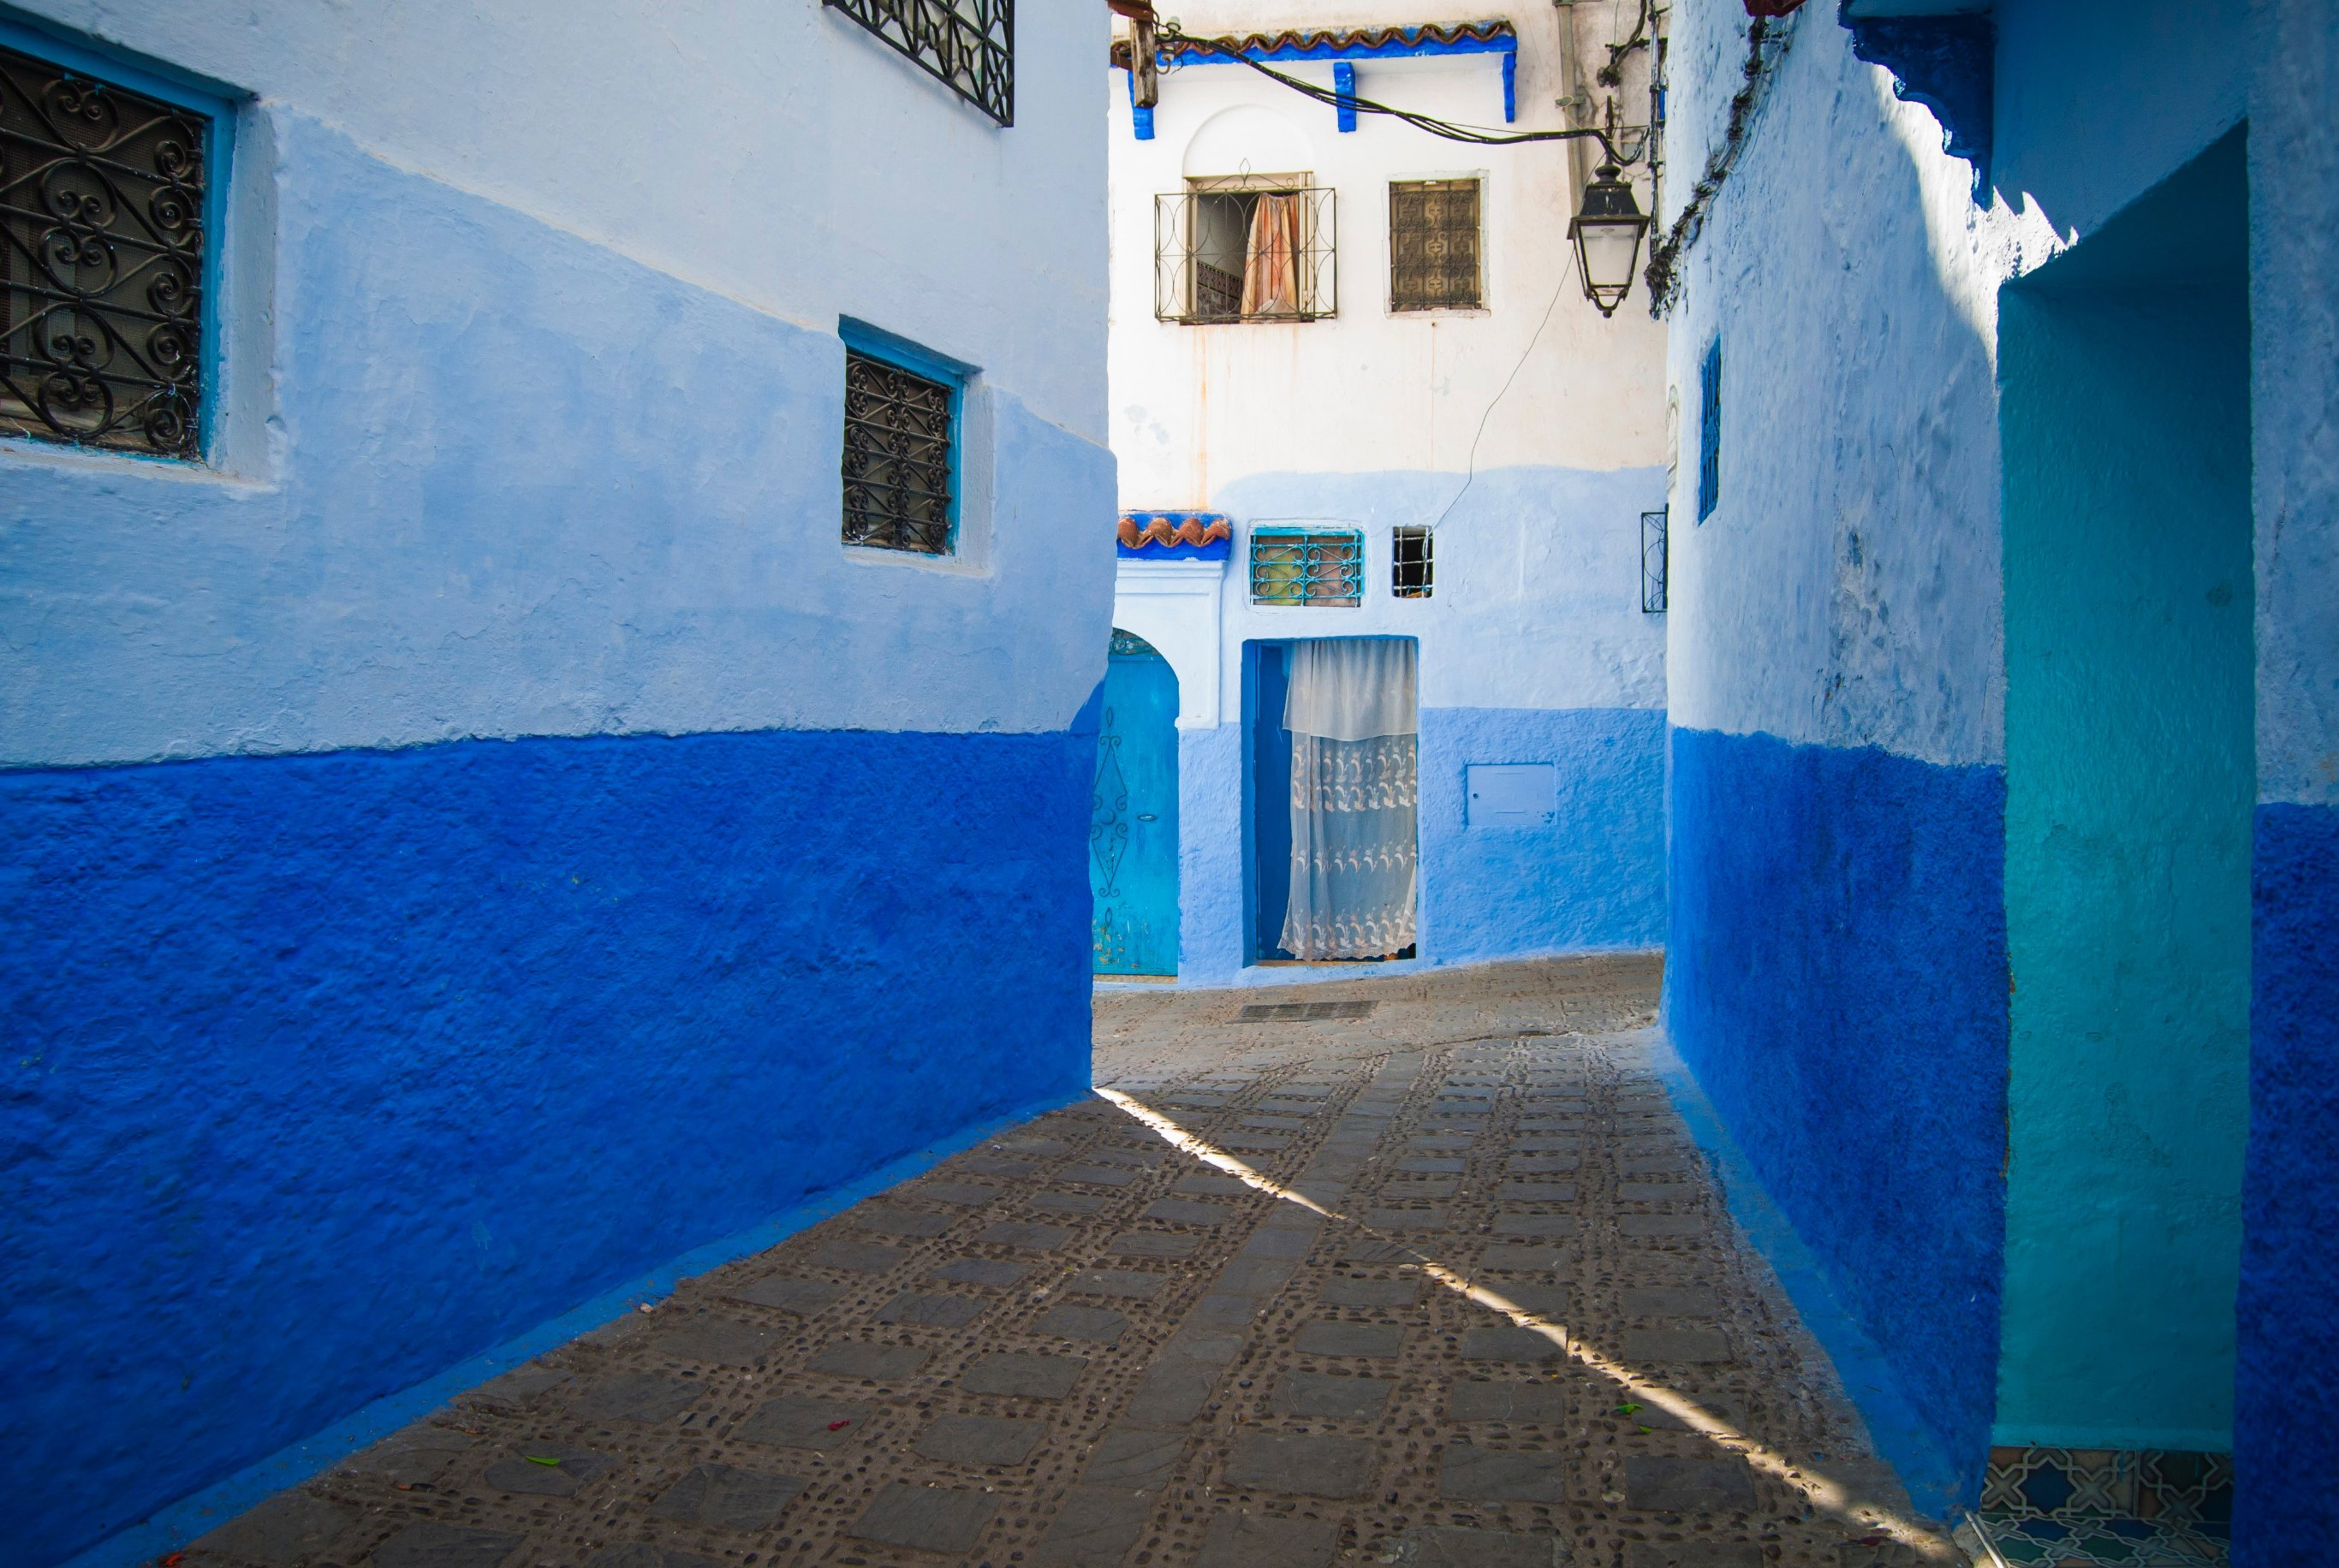 10-Day Moroccan Discovery - Morocco Itinerary